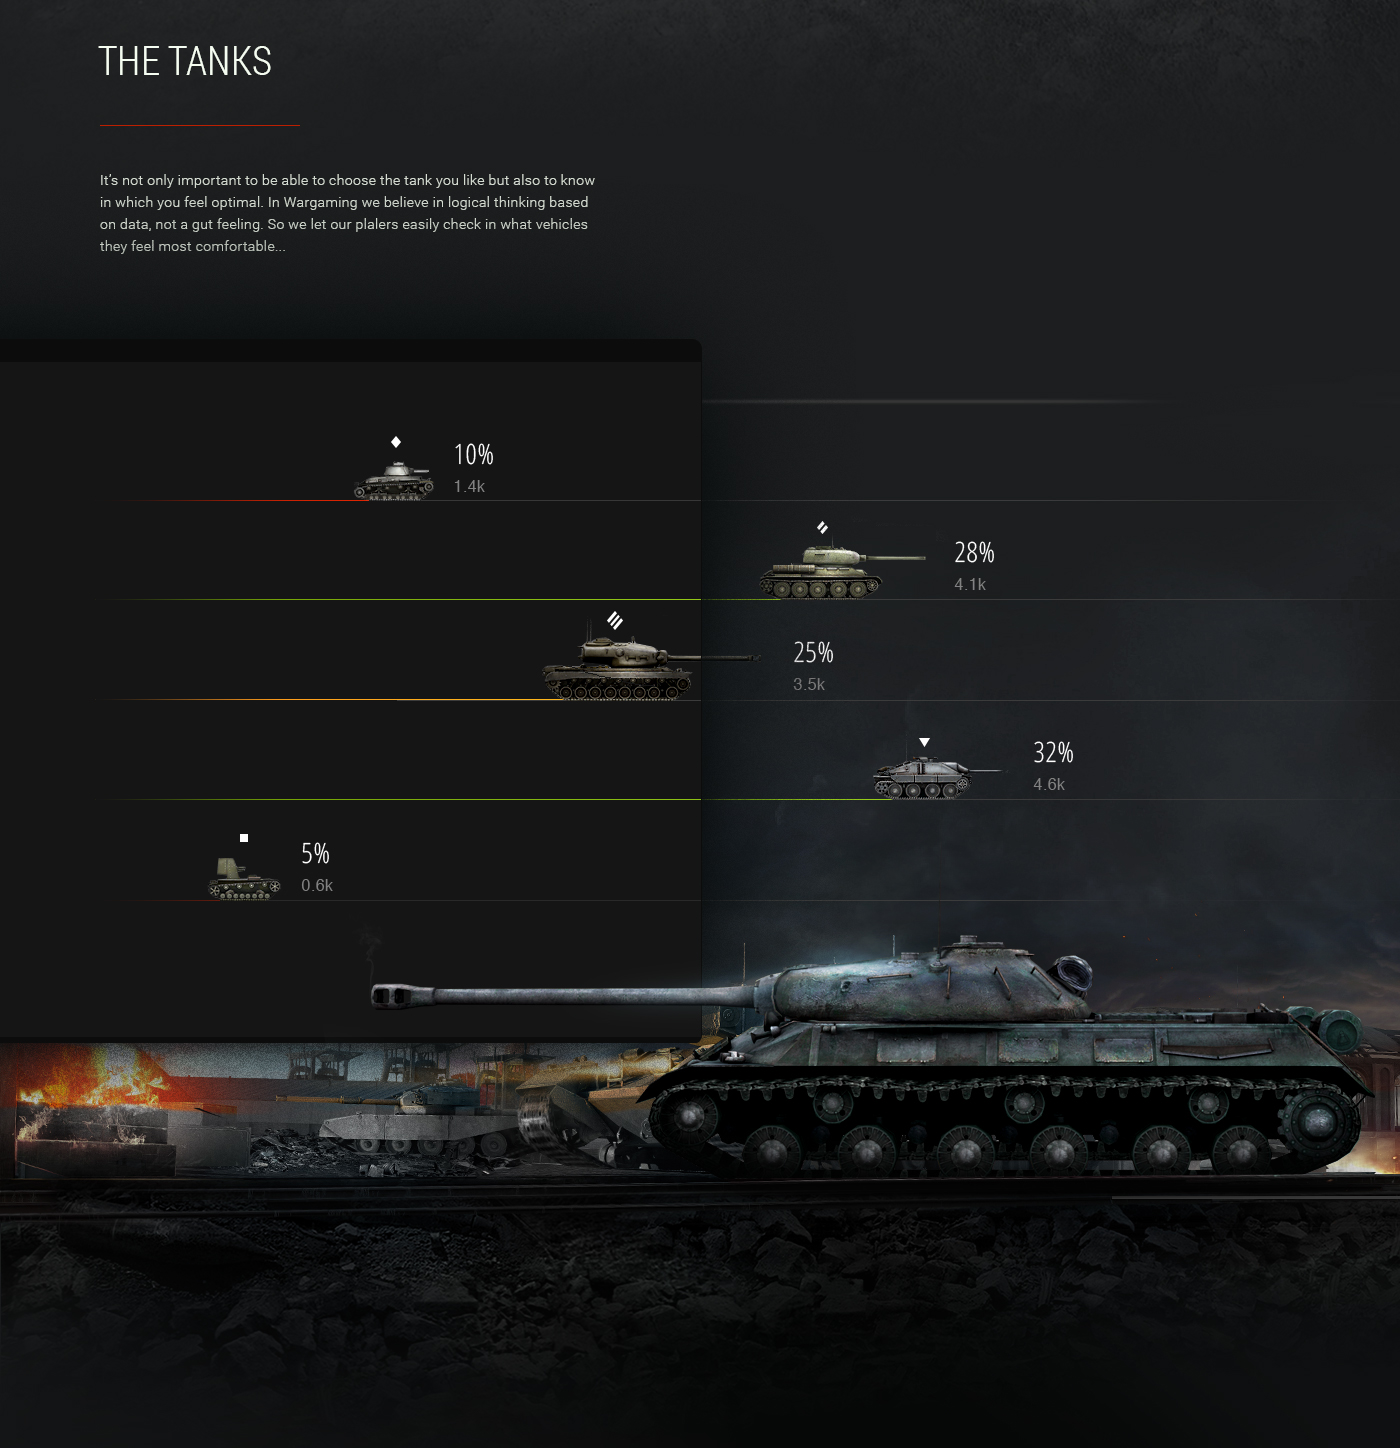 game console portal world of tanks wot wg wargaming